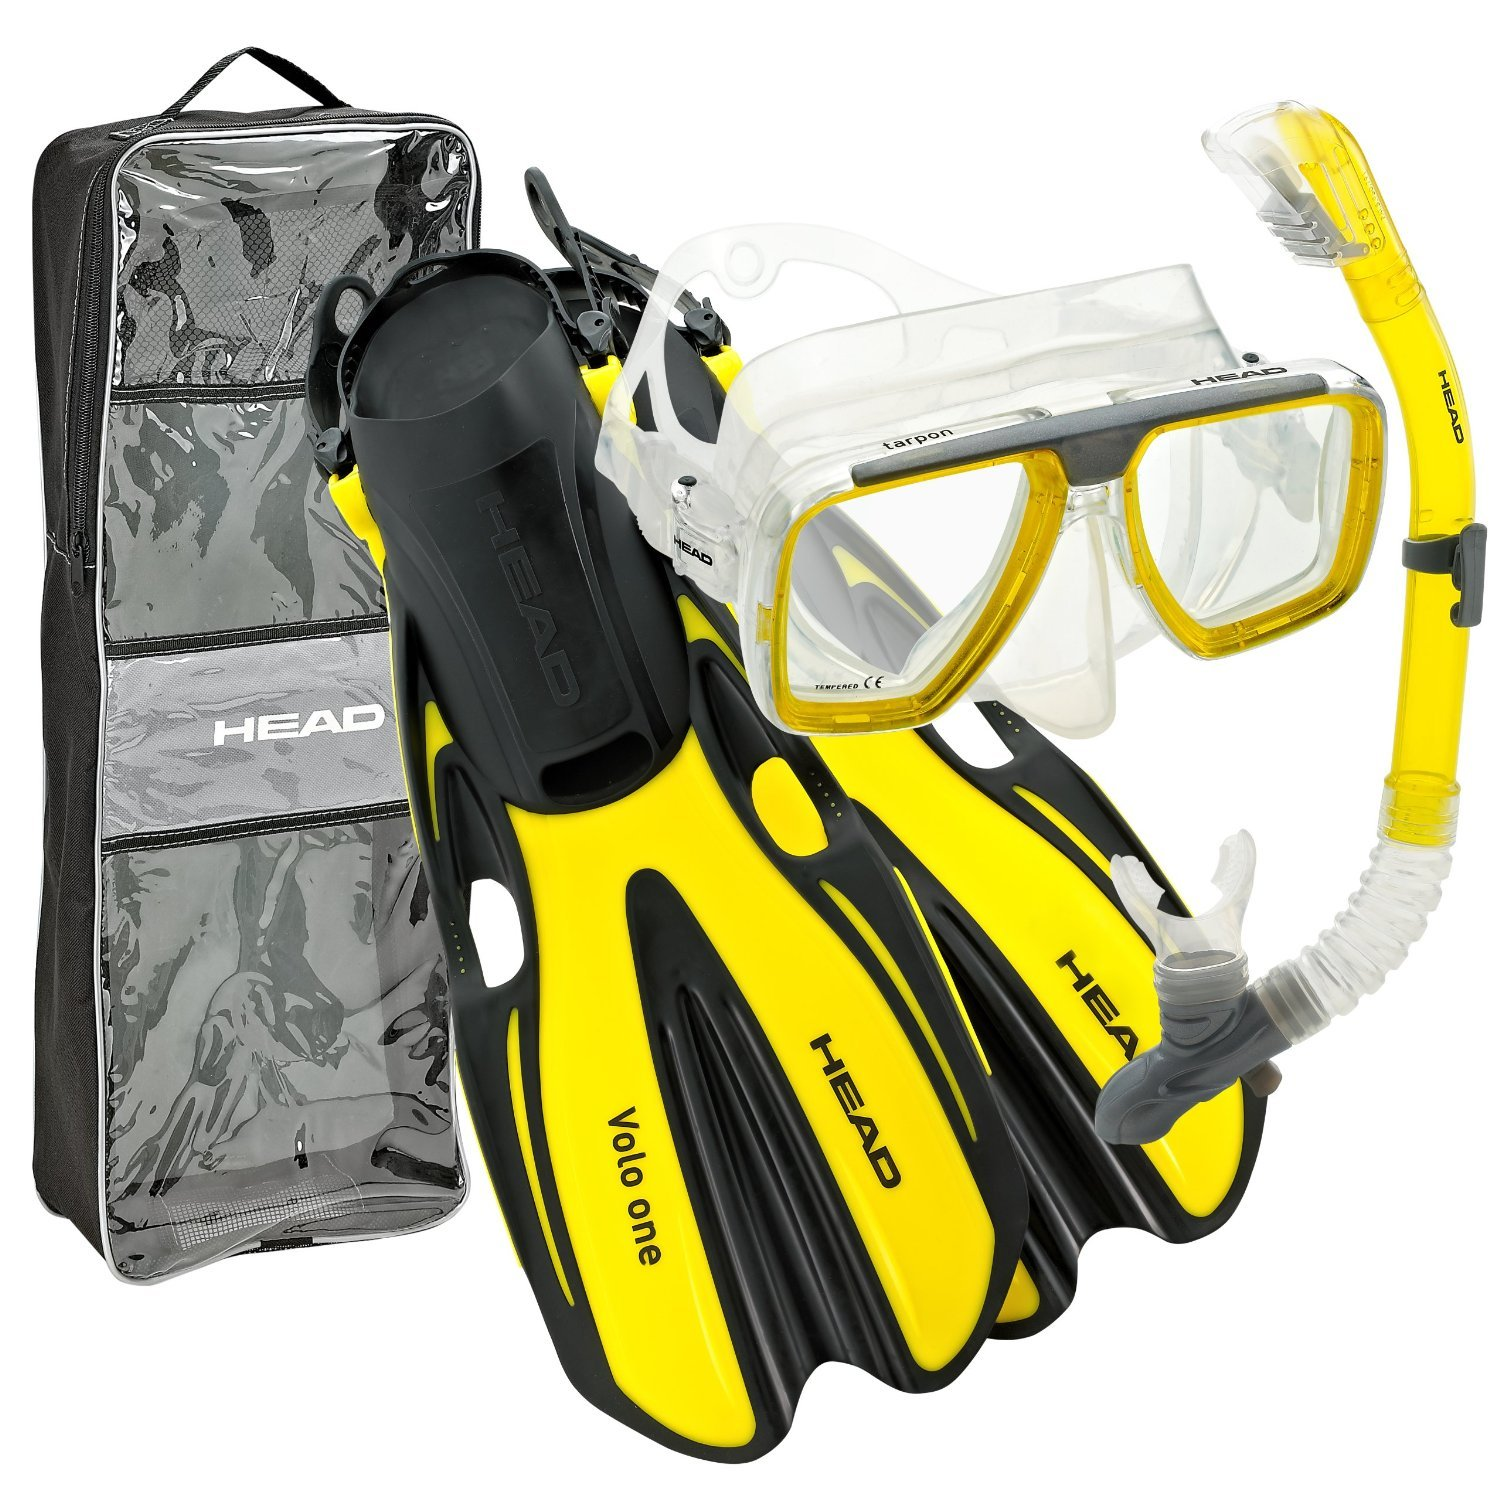 HEAD Mares Tarpon Mask/Snorkel/Fin Set, Yellow, Large by HEAD